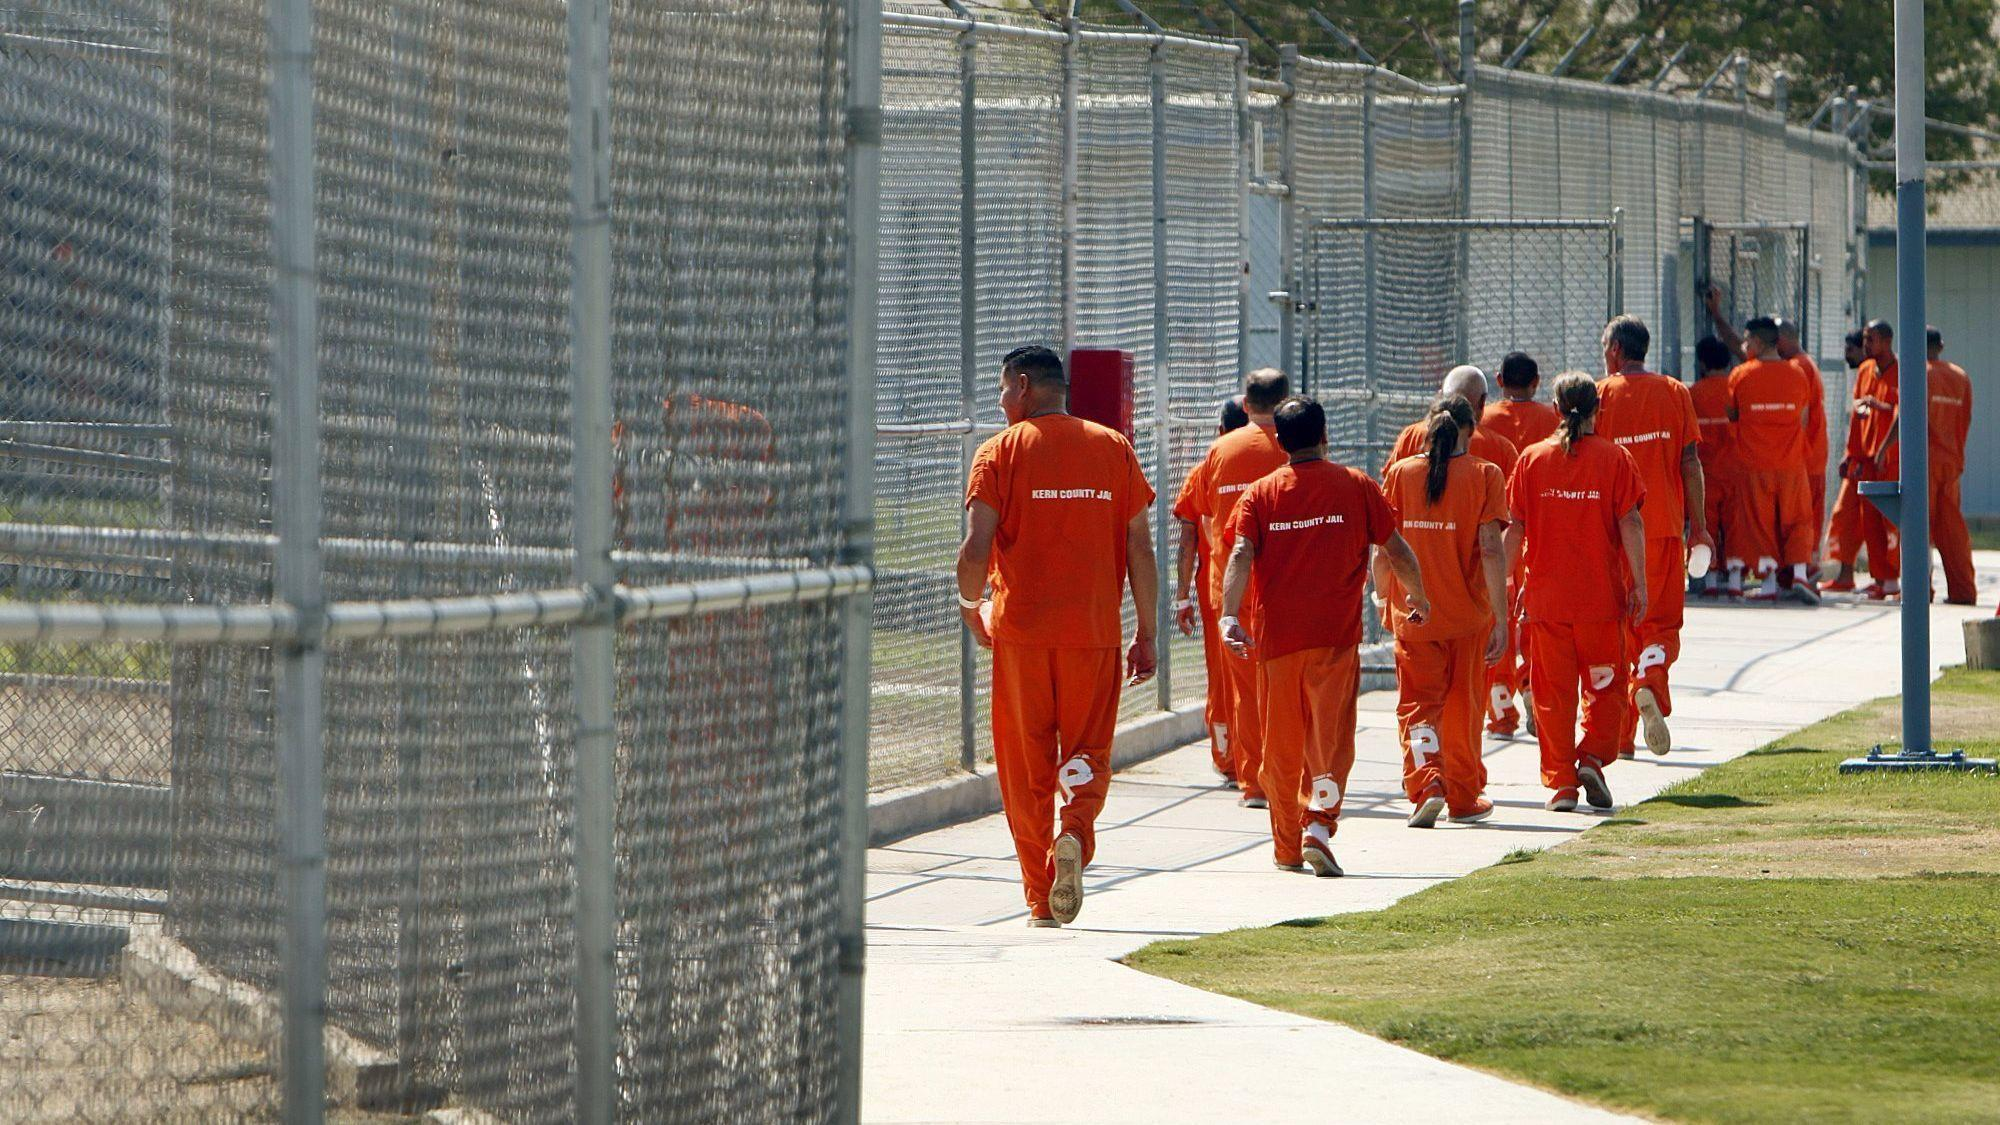 Kern County Inmate Search - California Inmate Search